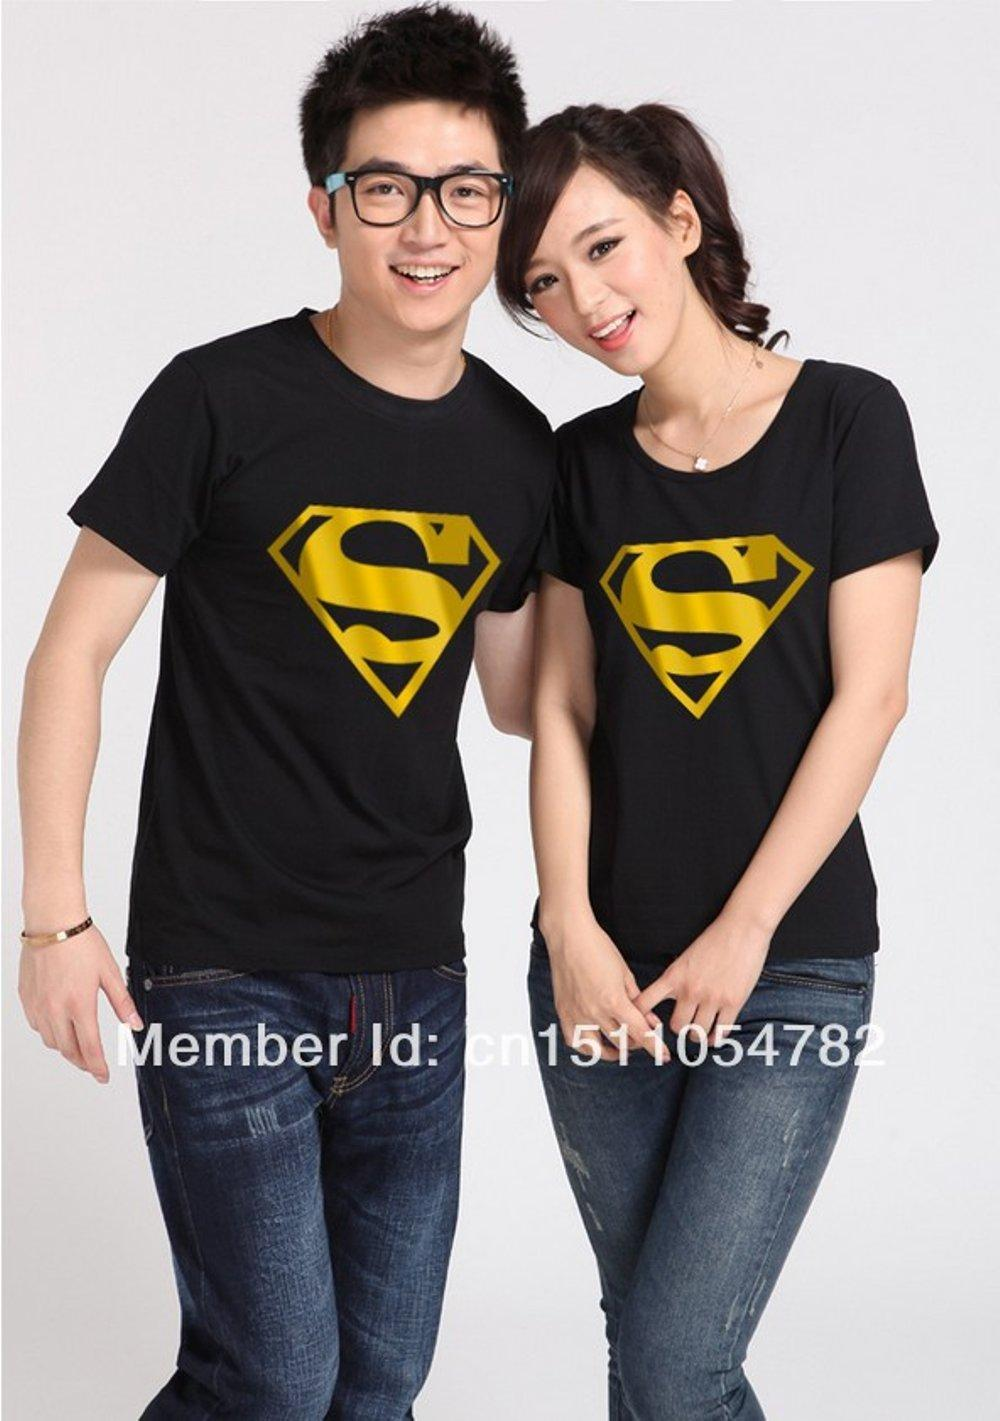 KAOS COUPLE SUPERMAN GOLD FOIL (HITAM) di lapak COUPLE GROSIR couplegrosir